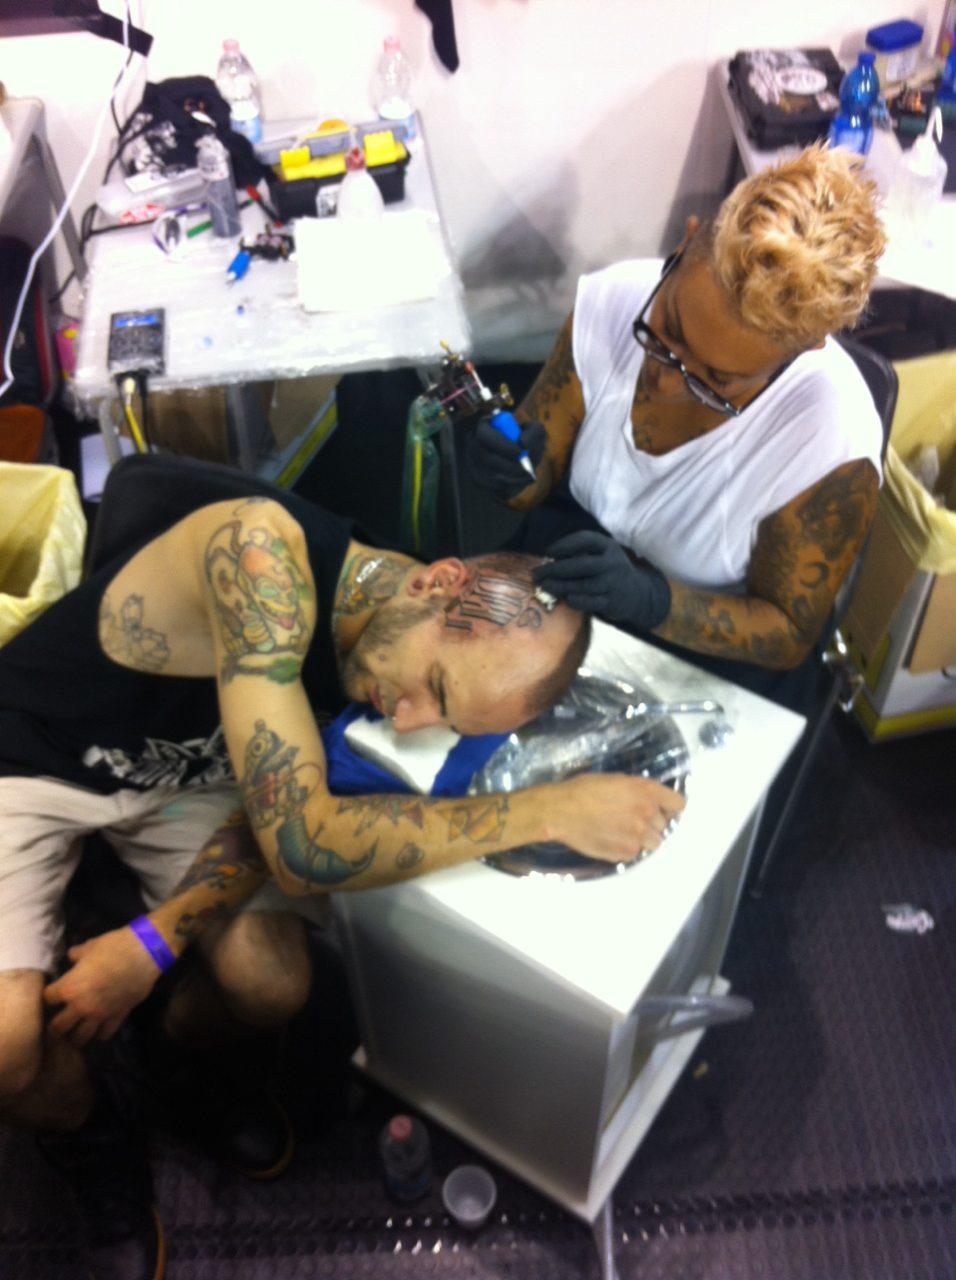 movingwater-at-the-tattoo-convention-3